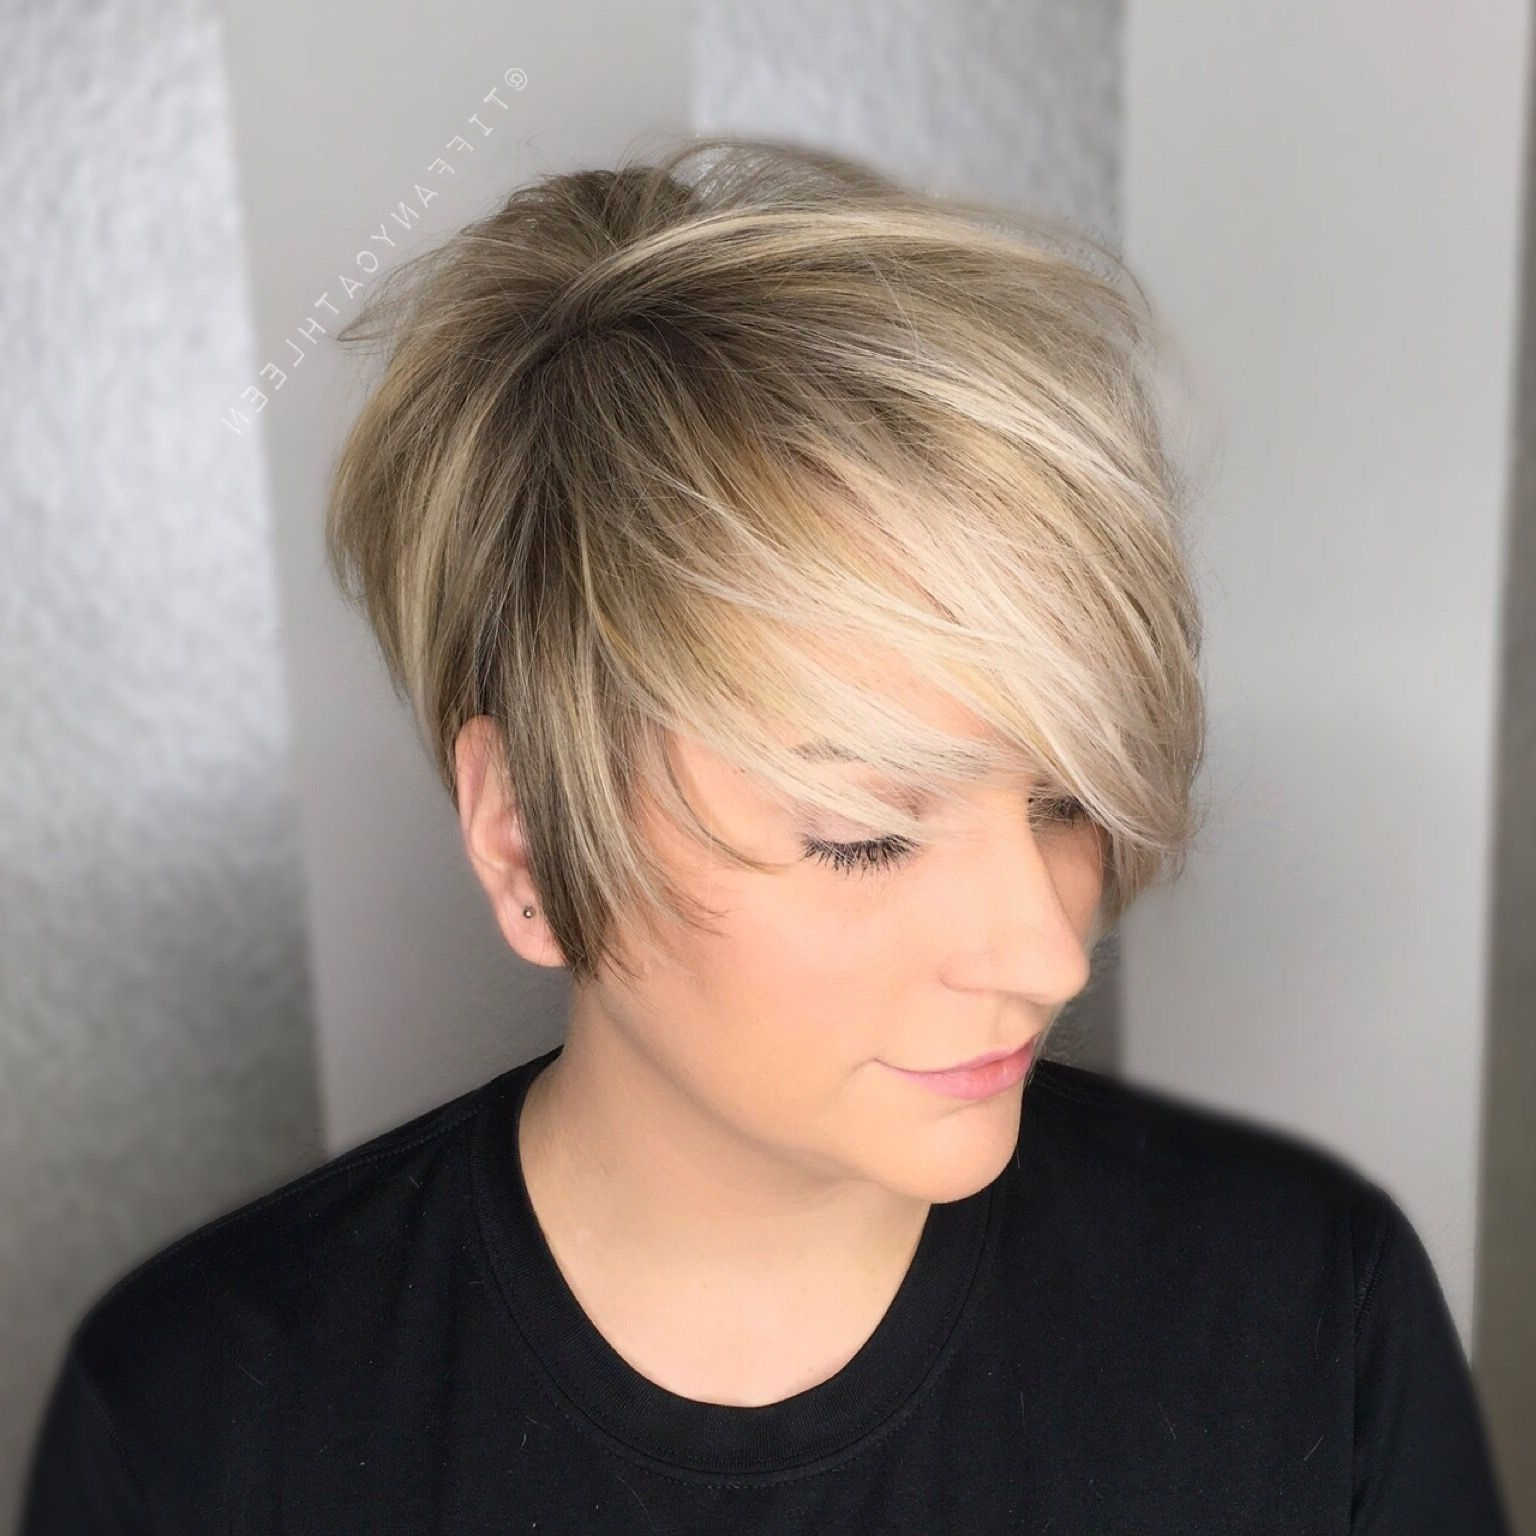 Gorgeous Blonde Balayage On A Textured Pixie Cut | My Hairstyles regarding Current Disconnected Blonde Balayage Pixie Haircuts